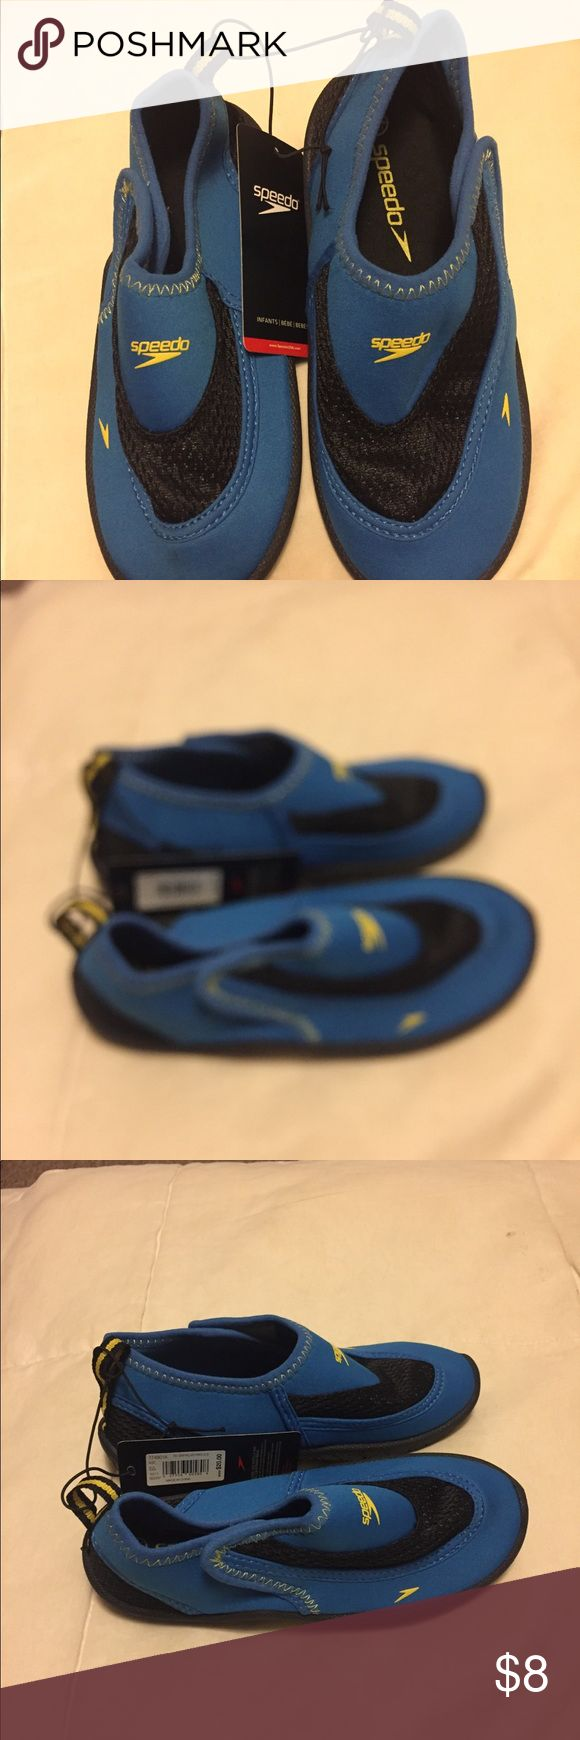 Boys Speedo water shoes Brand new Speedo water shoes for a toddler. Too big for my son. Tags are still on, never been worn. Velcro closure on the sides and rubber soles with traction. Size says 10/11 Speedo Shoes Water Shoes